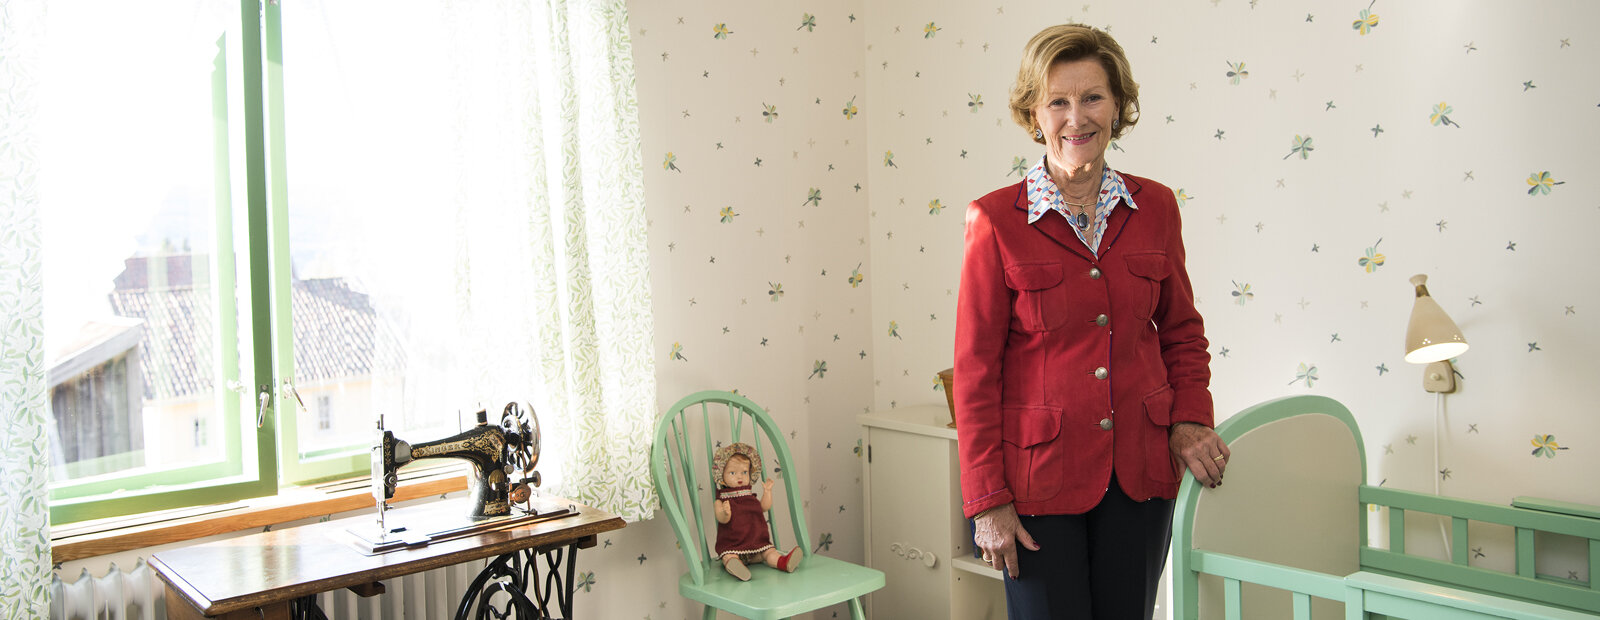 Queen Sonja in the bedroom she had as a child in her childhood home at Maihaugen open air-museum in Lillehammer.